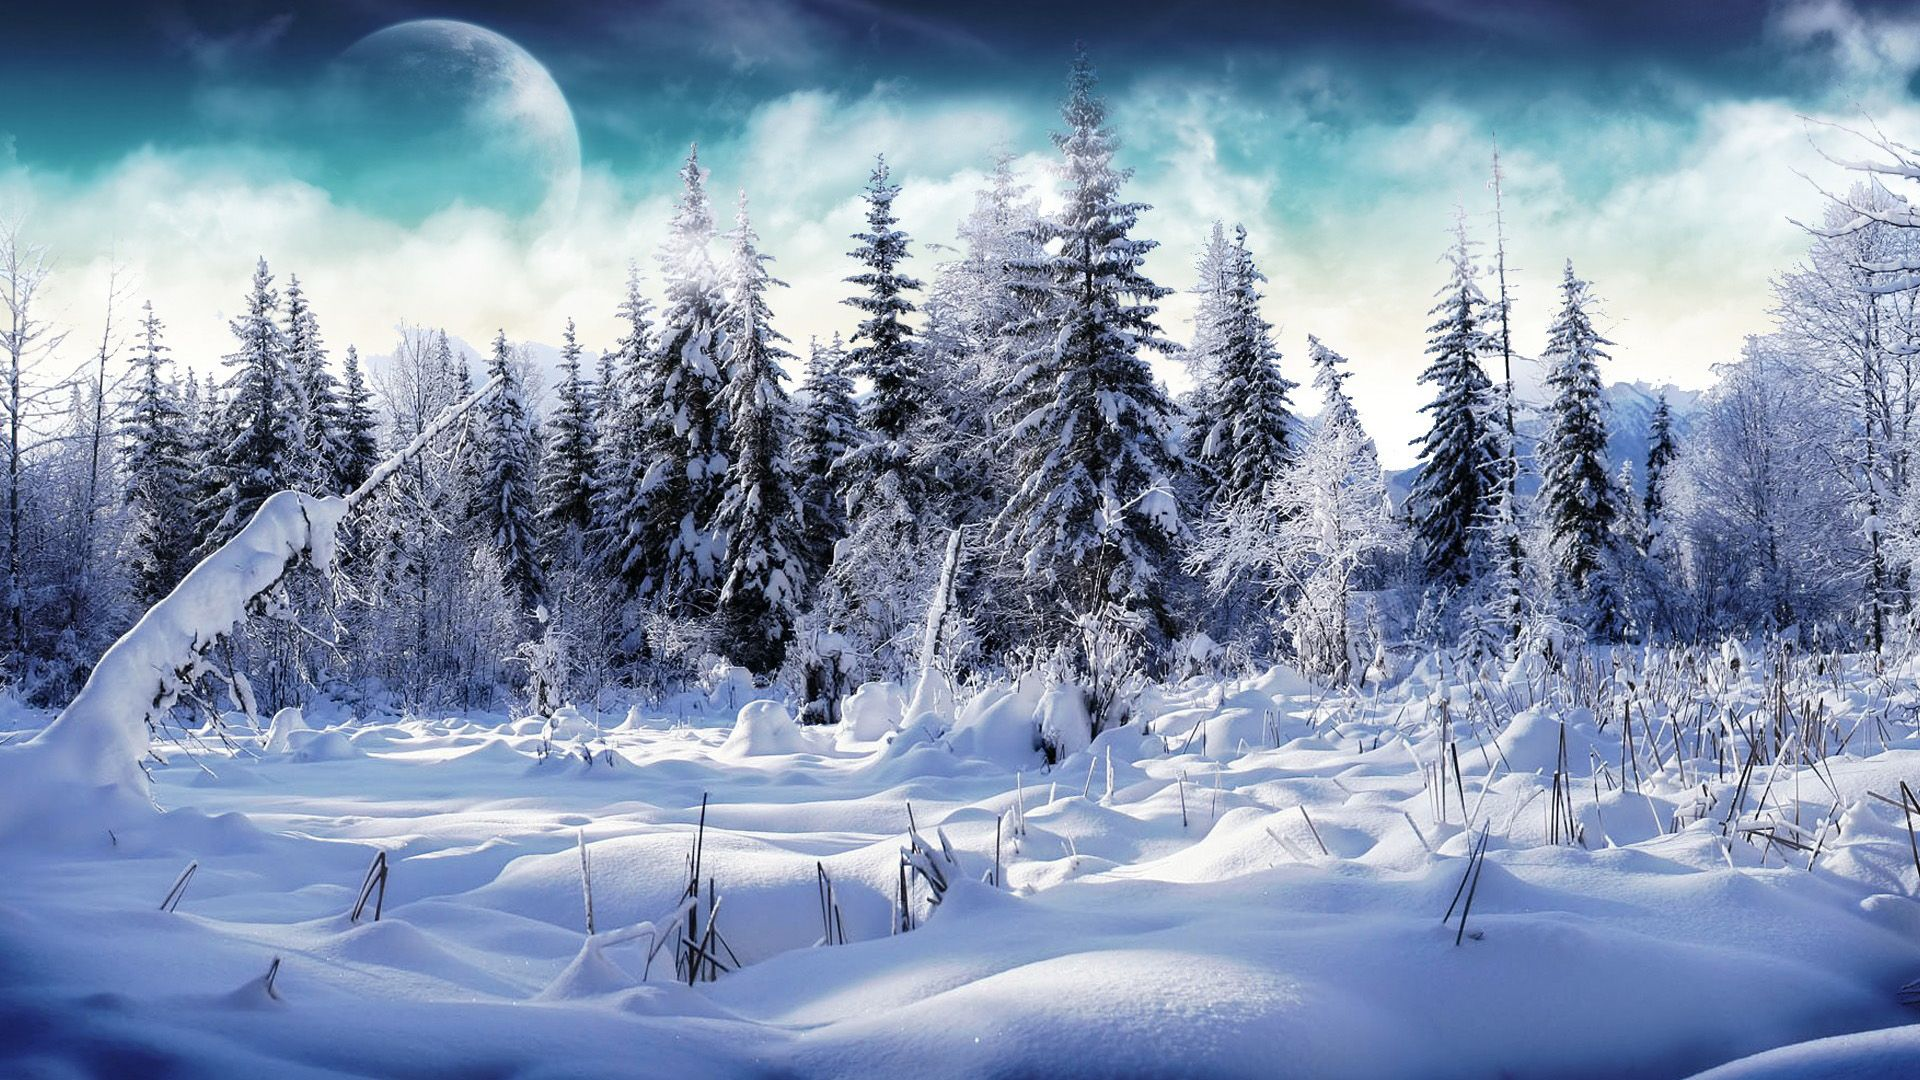 Winter Snow Scenes computer Wallpaper